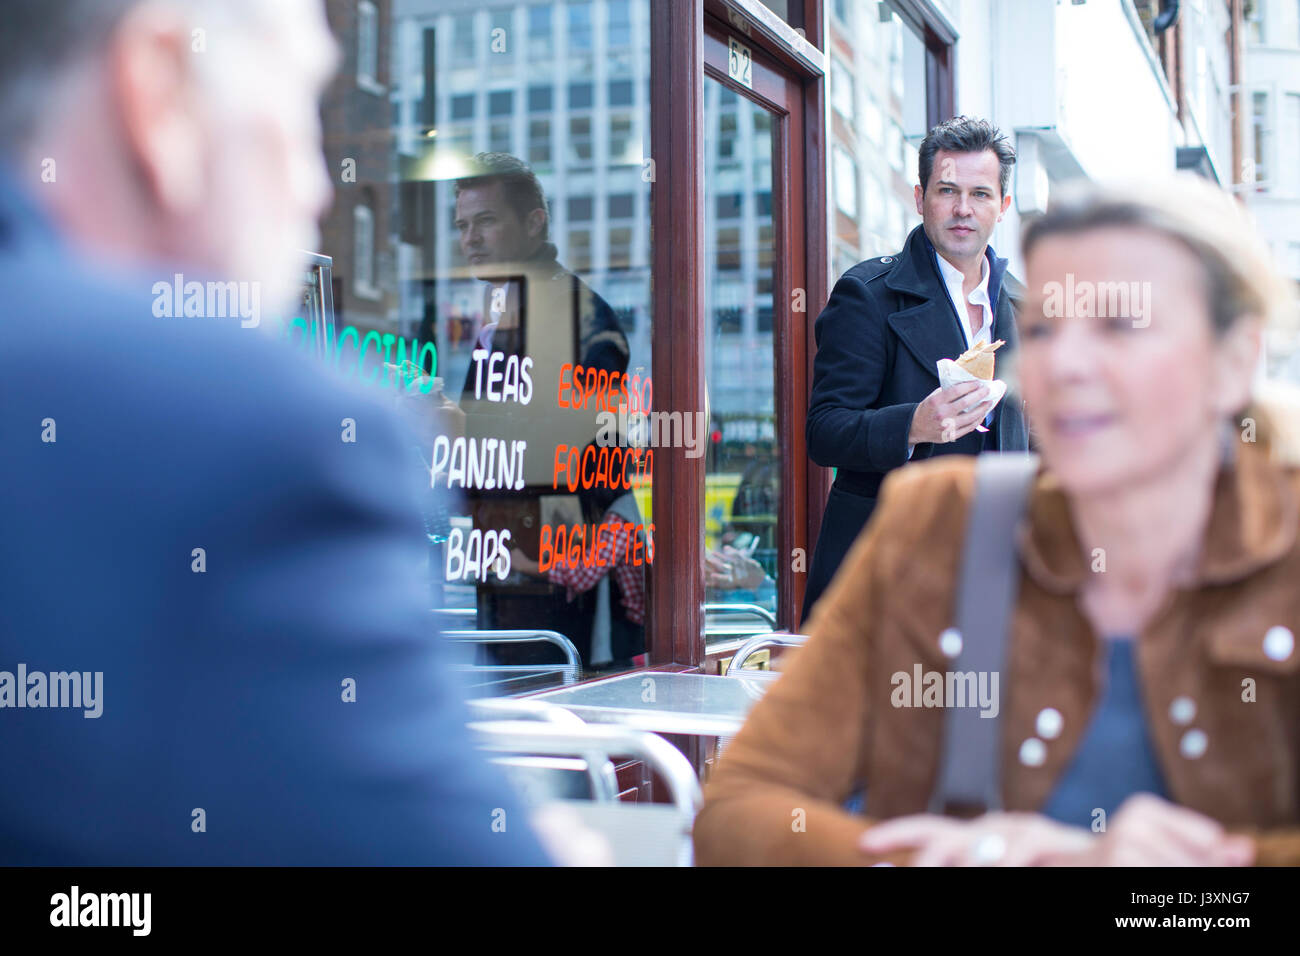 People at pavement cafe having lunch - Stock Image